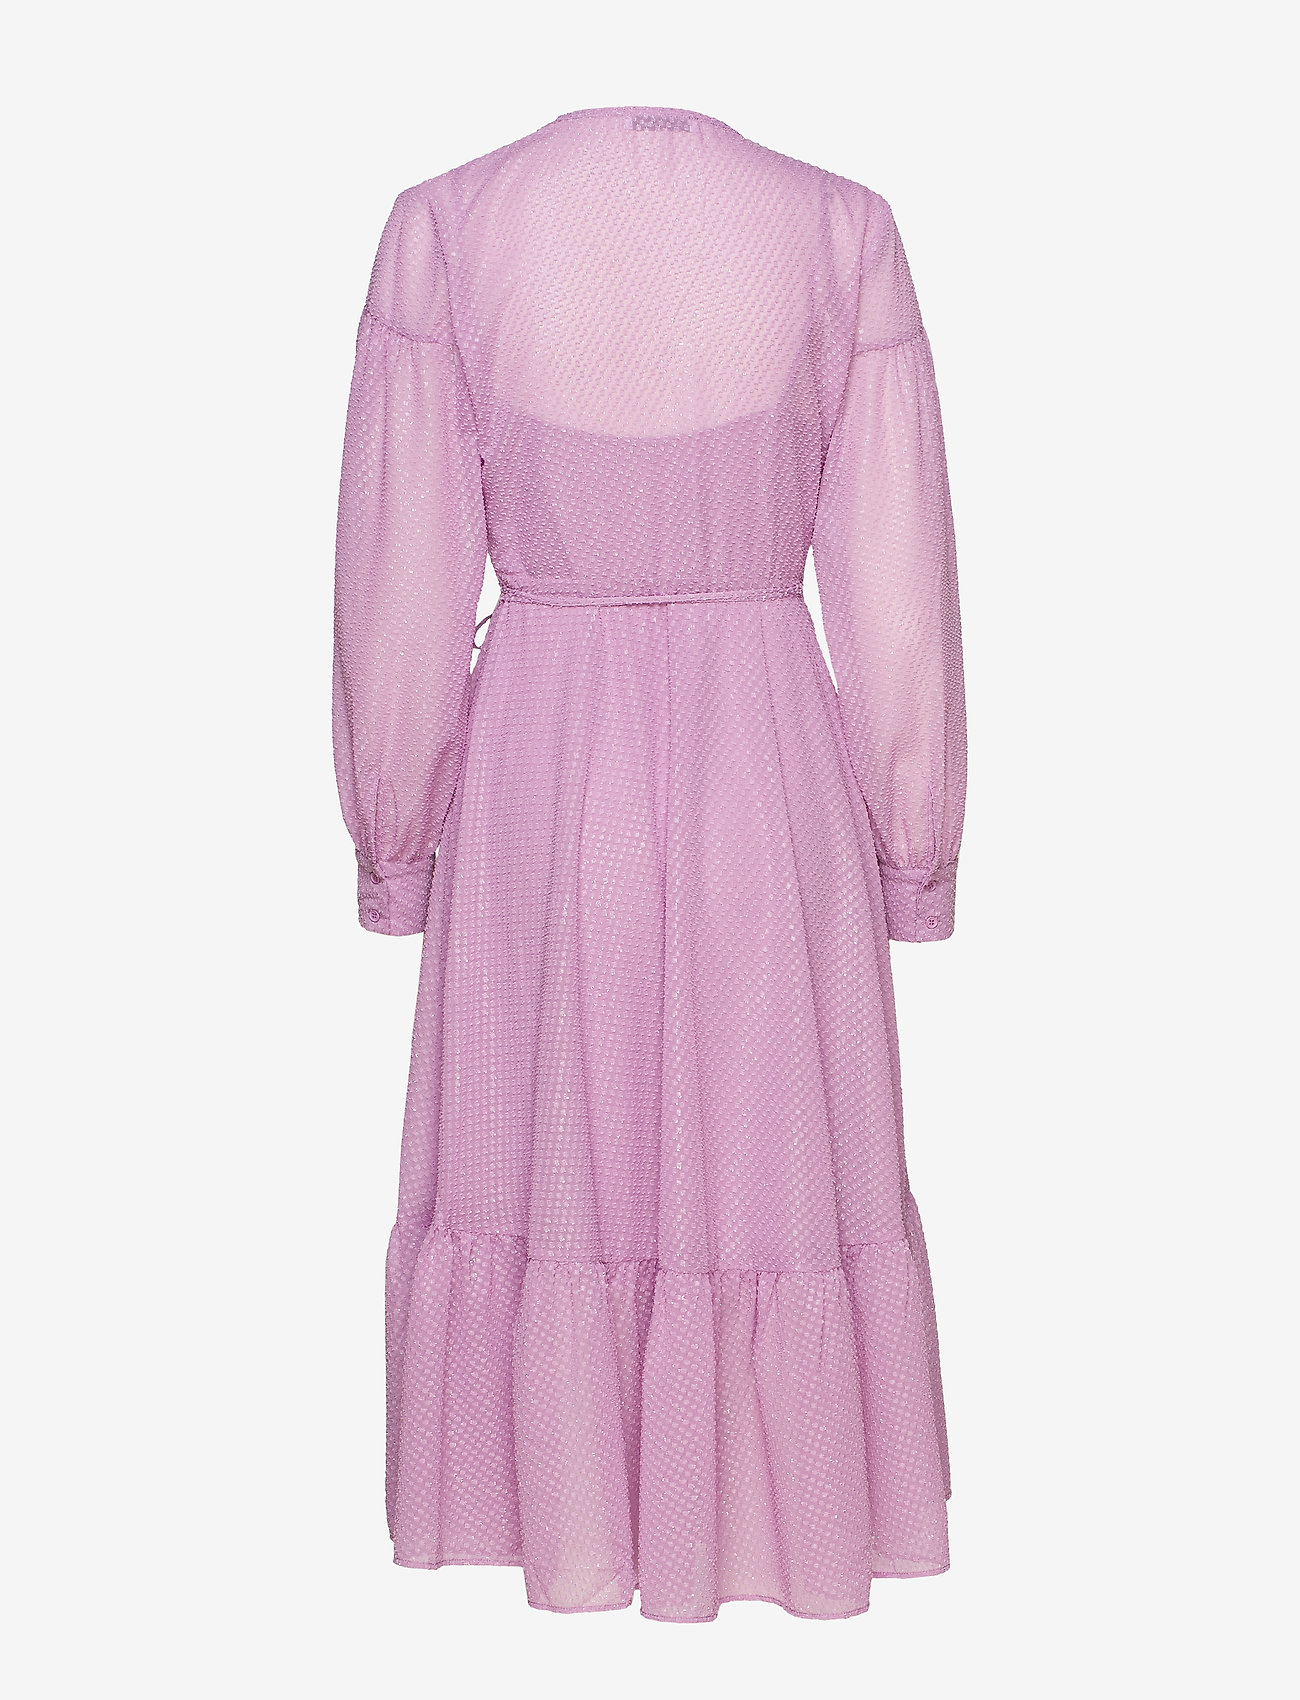 Samsøe Samsøe - Tulip long dress 11512 - omlottklänning - languid lavender - 1